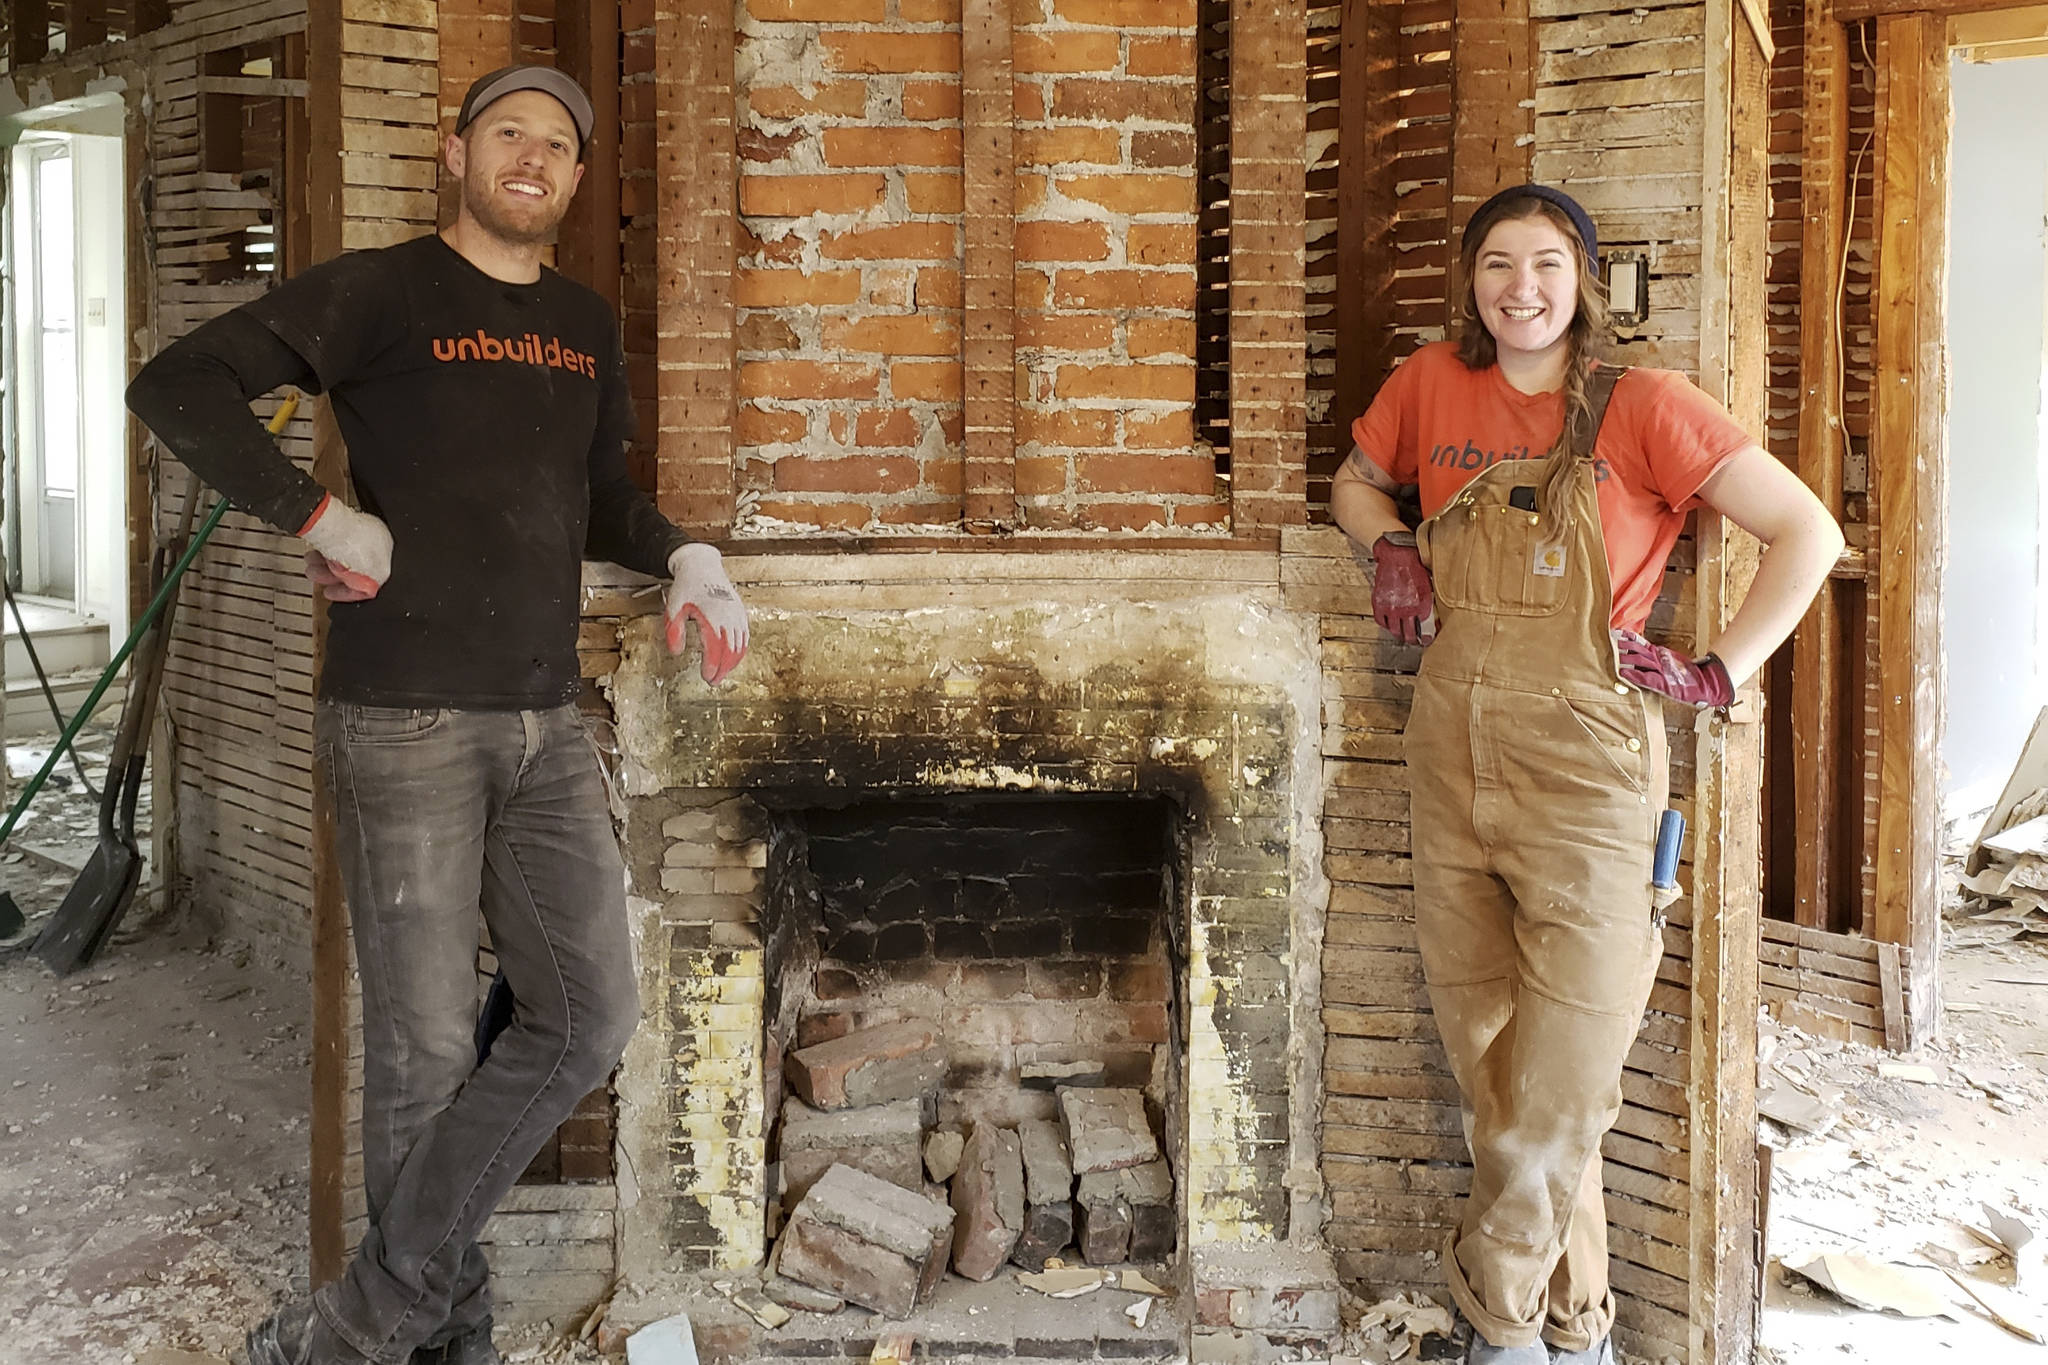 Unbuilders owner Adam Corneil with employee Erin Watkins in front of a deconstructed hearth. Unbuilders crews carefully deconstruct old homes to rescue as many reusable materials as possible, including old-growth timber. (Unbuilders photo)